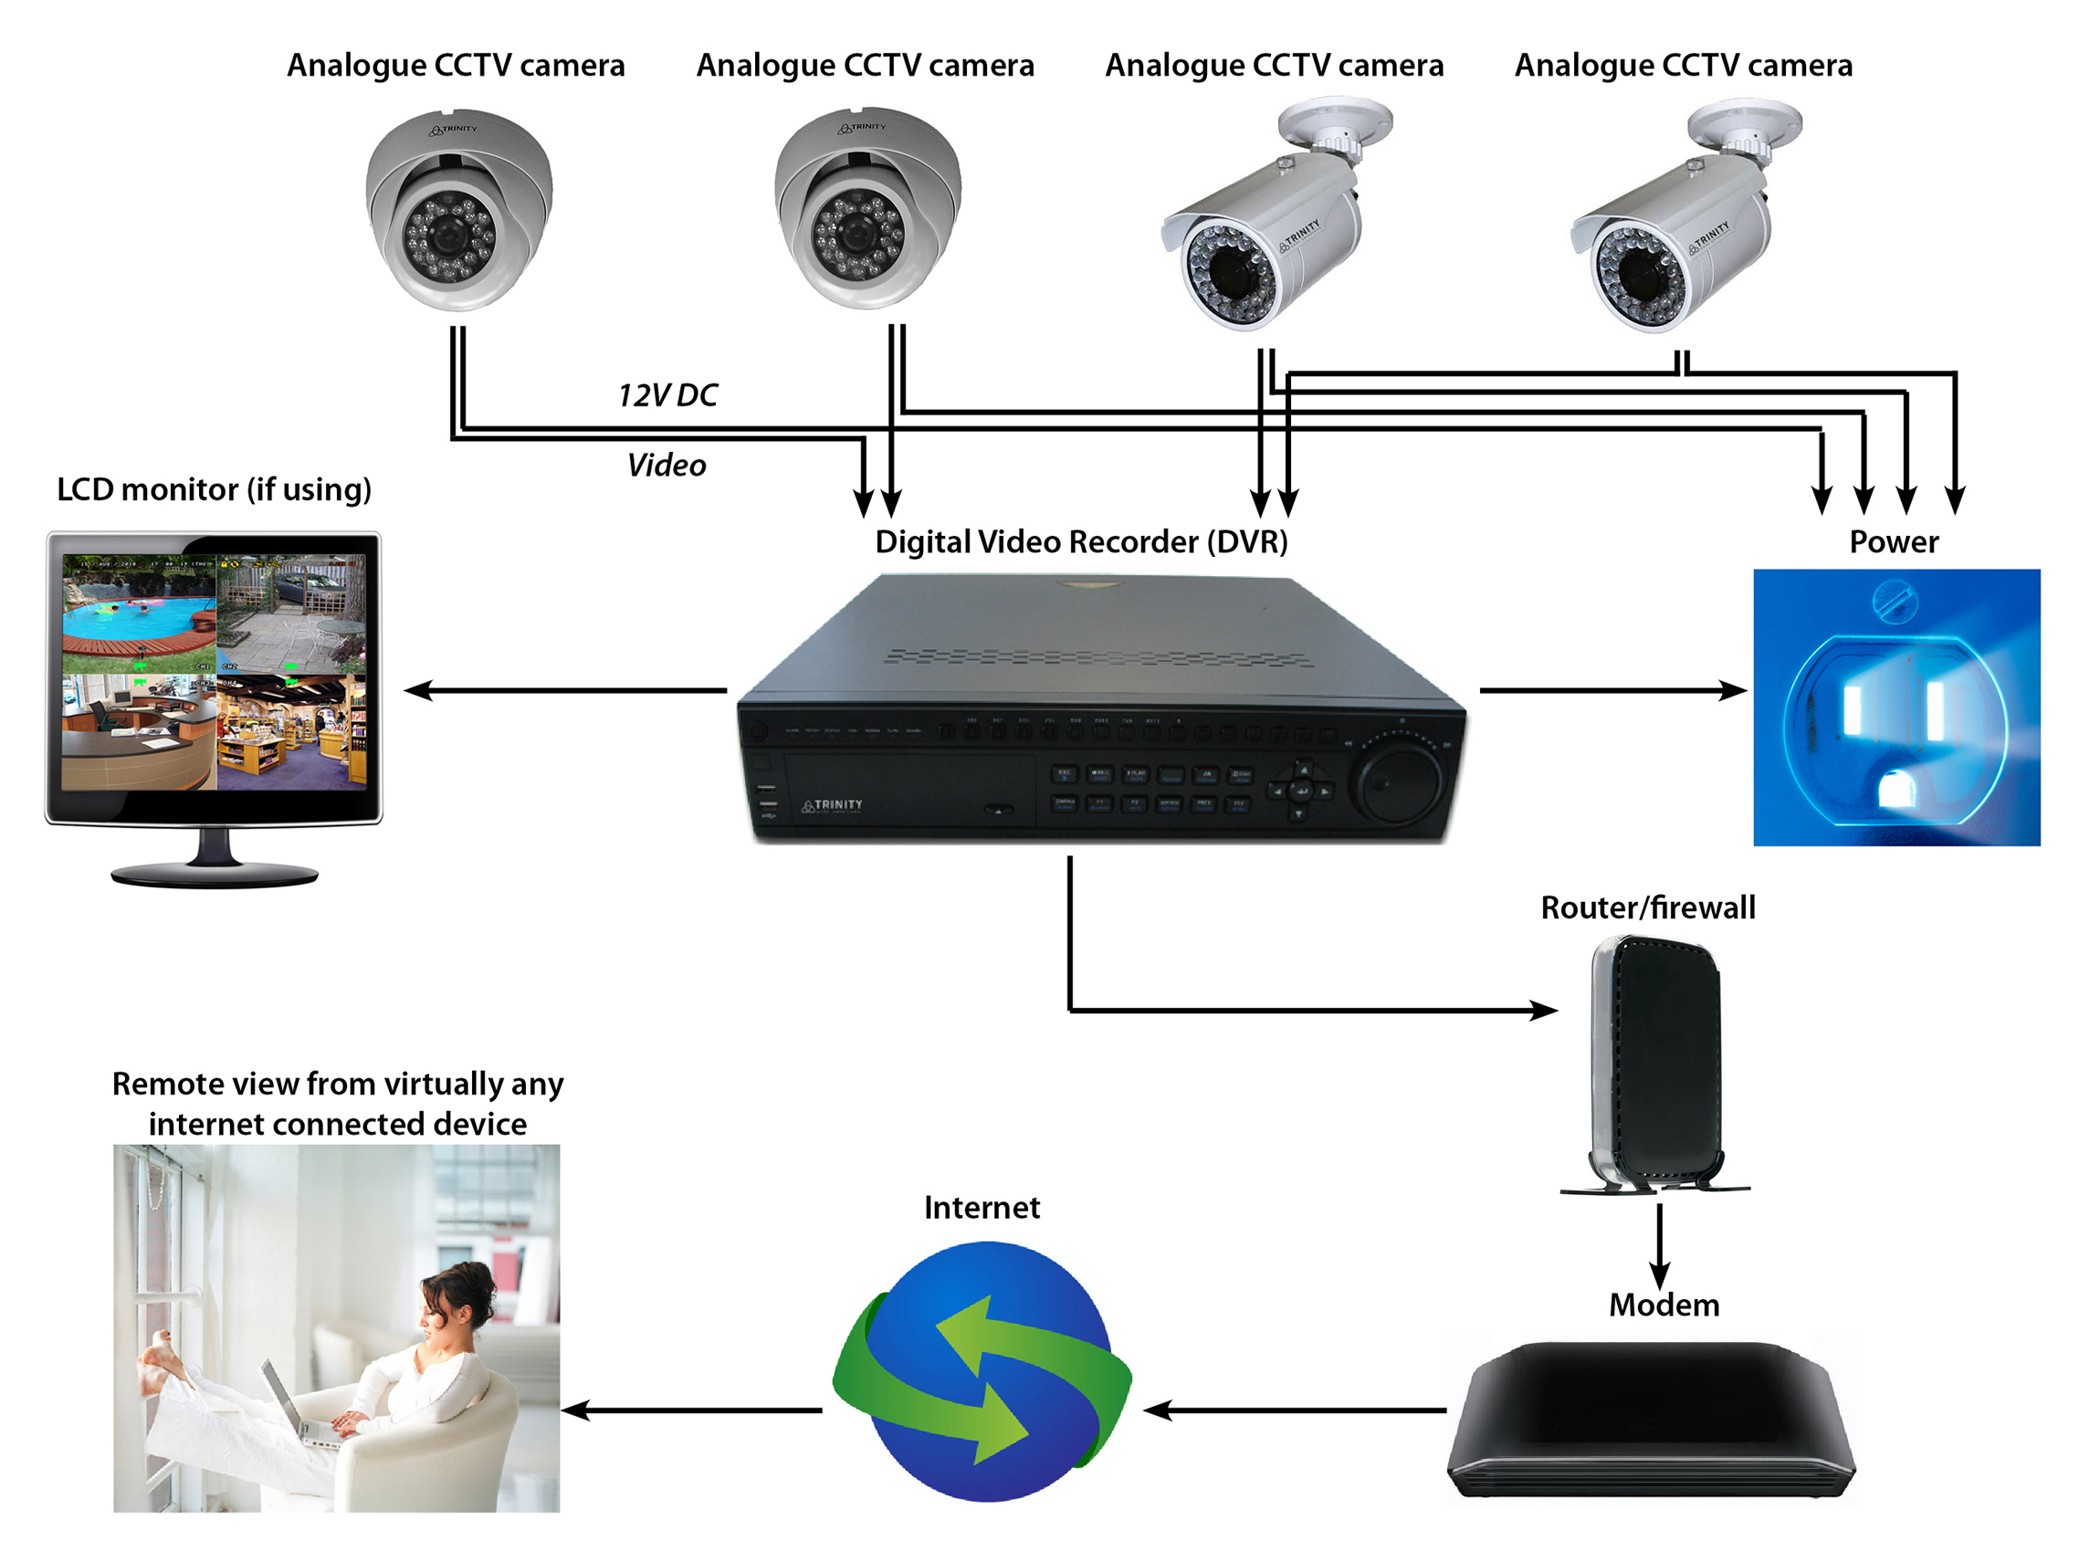 Security Camera Wiring Diagram Answers to Cctv Faq Trinity Cctv solutions 0508 11 00 22 Of Security Camera Wiring Diagram